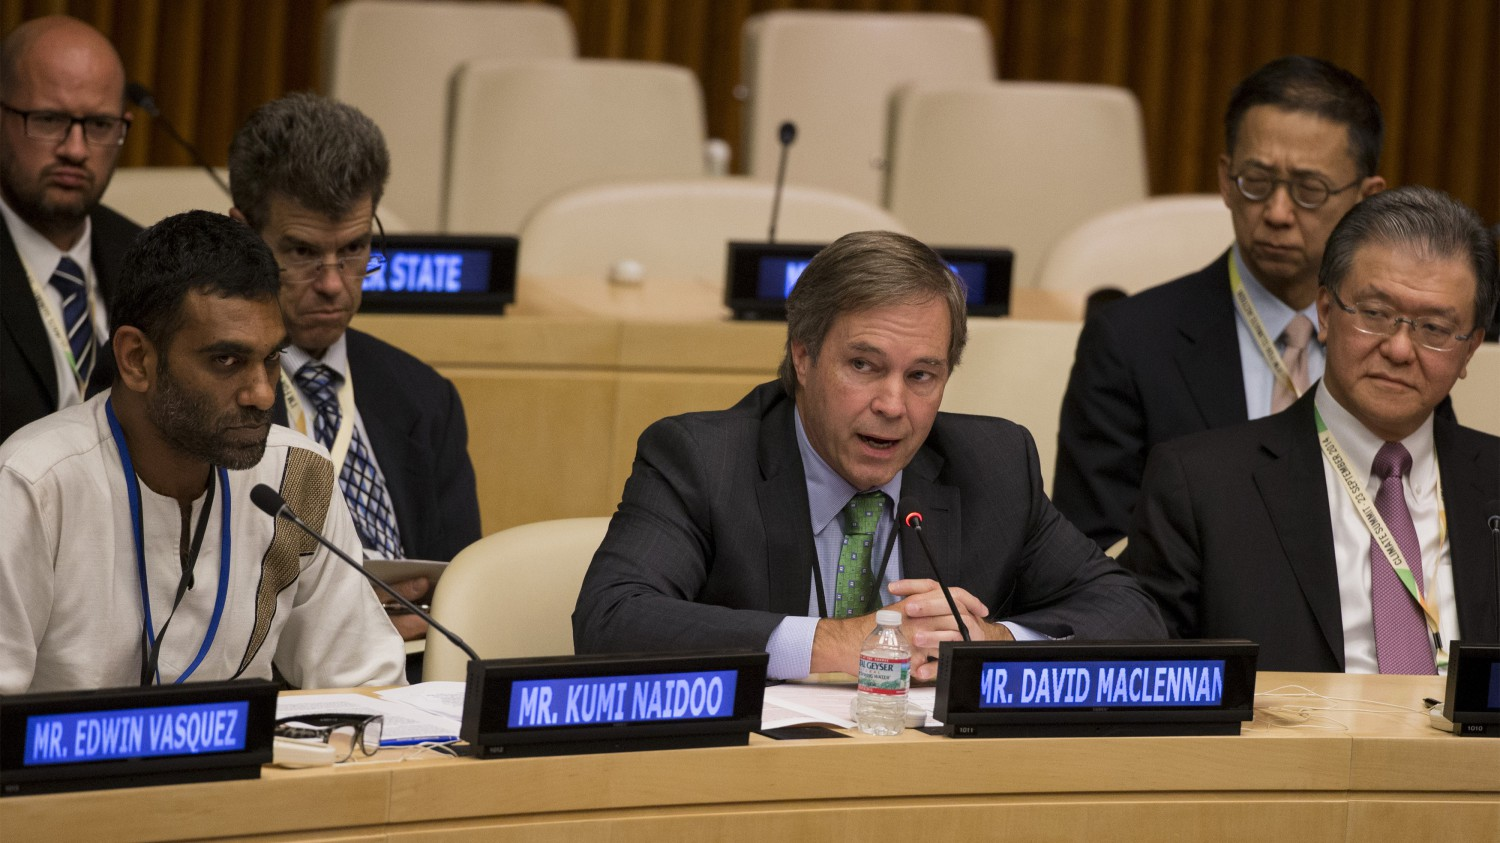 Cargill Chief Executive David MacLennan addressed the Climate Summit at the U.N. in 2014, after making a major commitment to end deforestation.